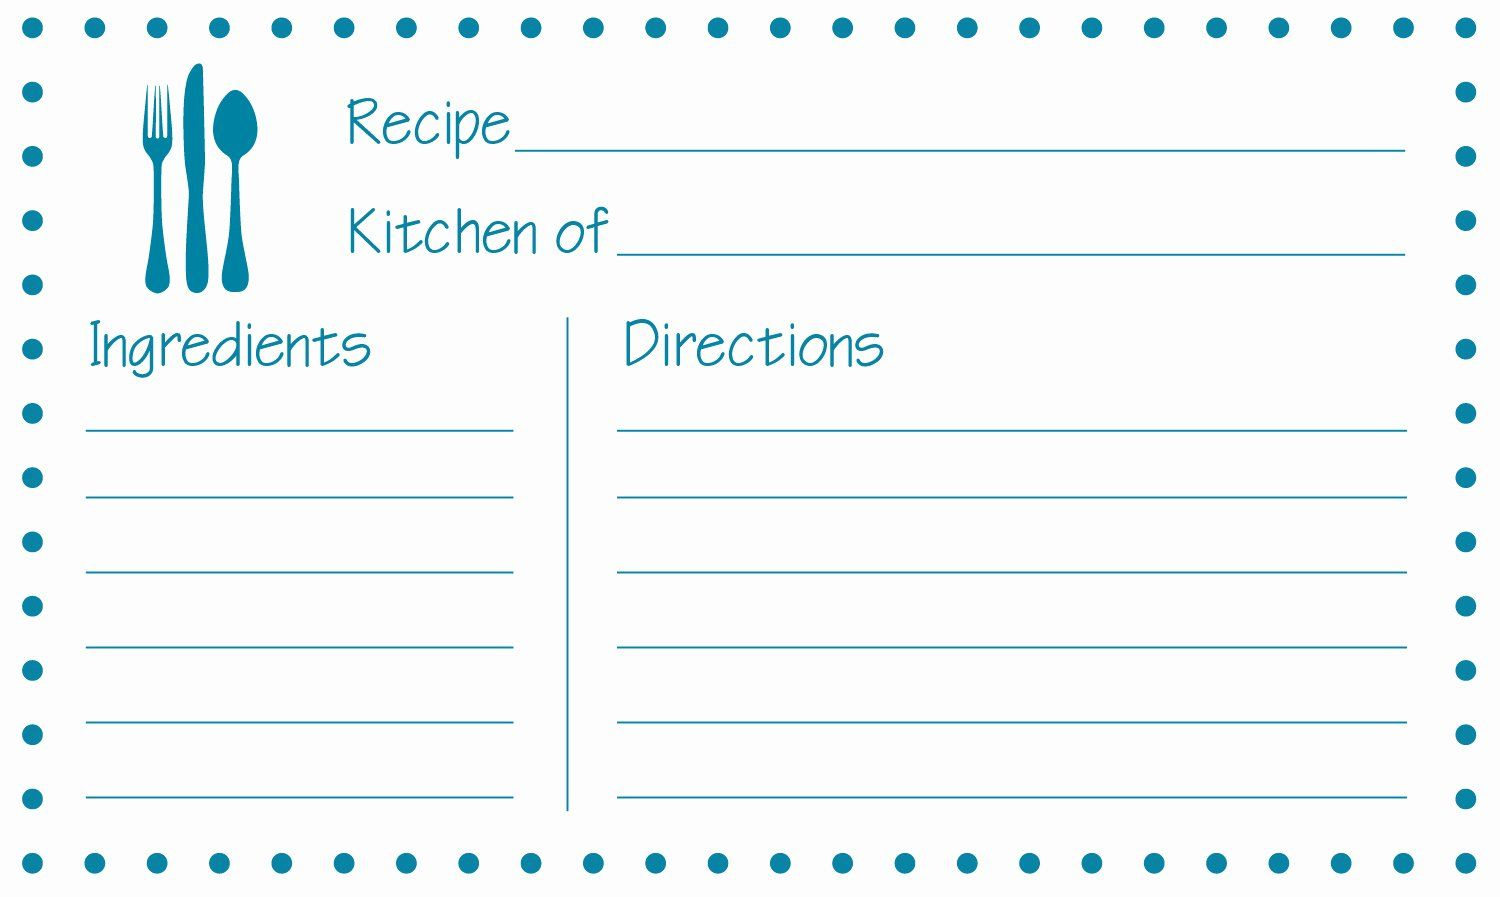 Free Editable Recipe Card Templates For Microsoft Word Luxury Free Printable Recipe Cards Recipe Cards Template Recipe Cards Printable Free Card Templates Free